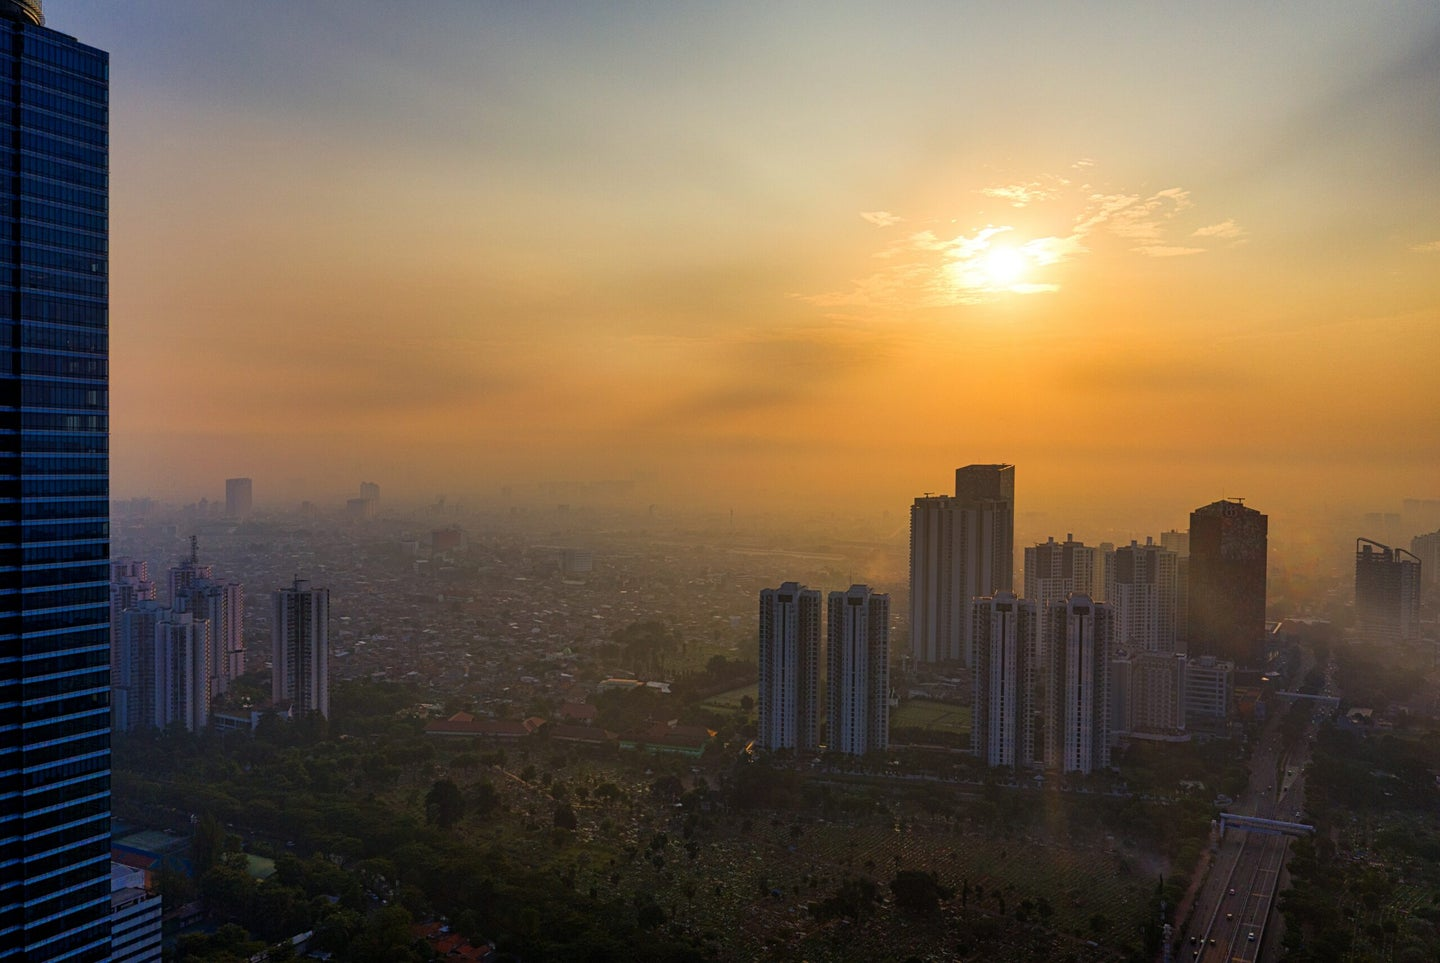 high risk buildings in Jakarta, Indonesia in front of golden sun